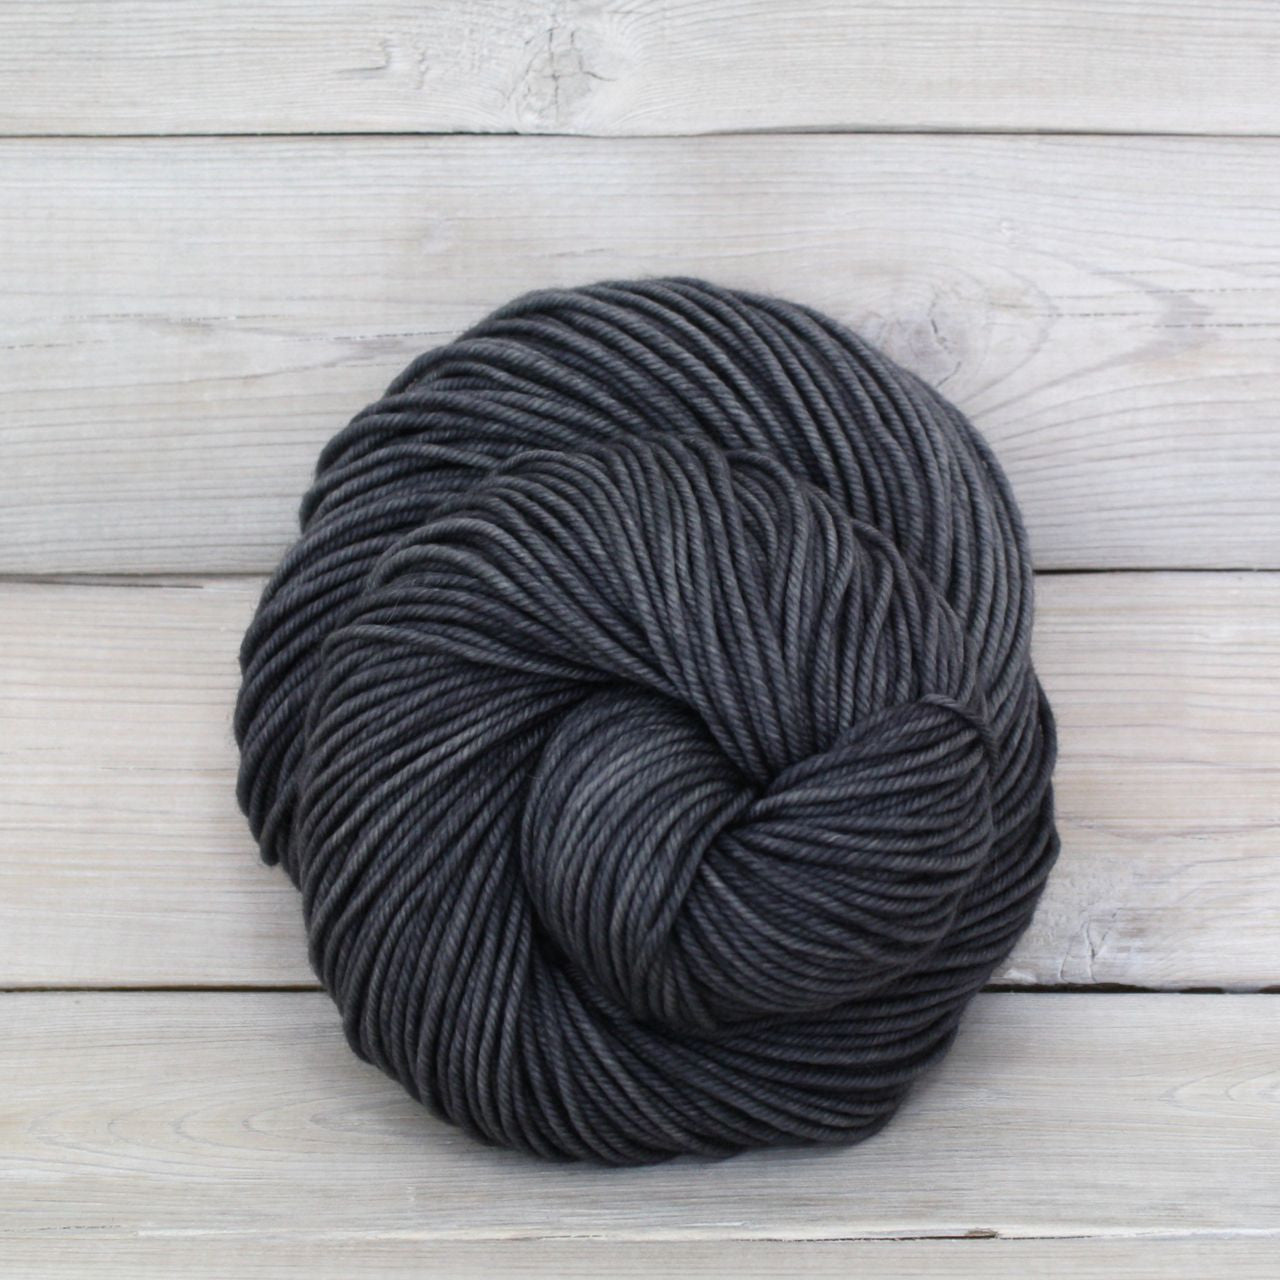 Luna Grey Fiber Arts Calypso Yarn | Colorway: Charcoal